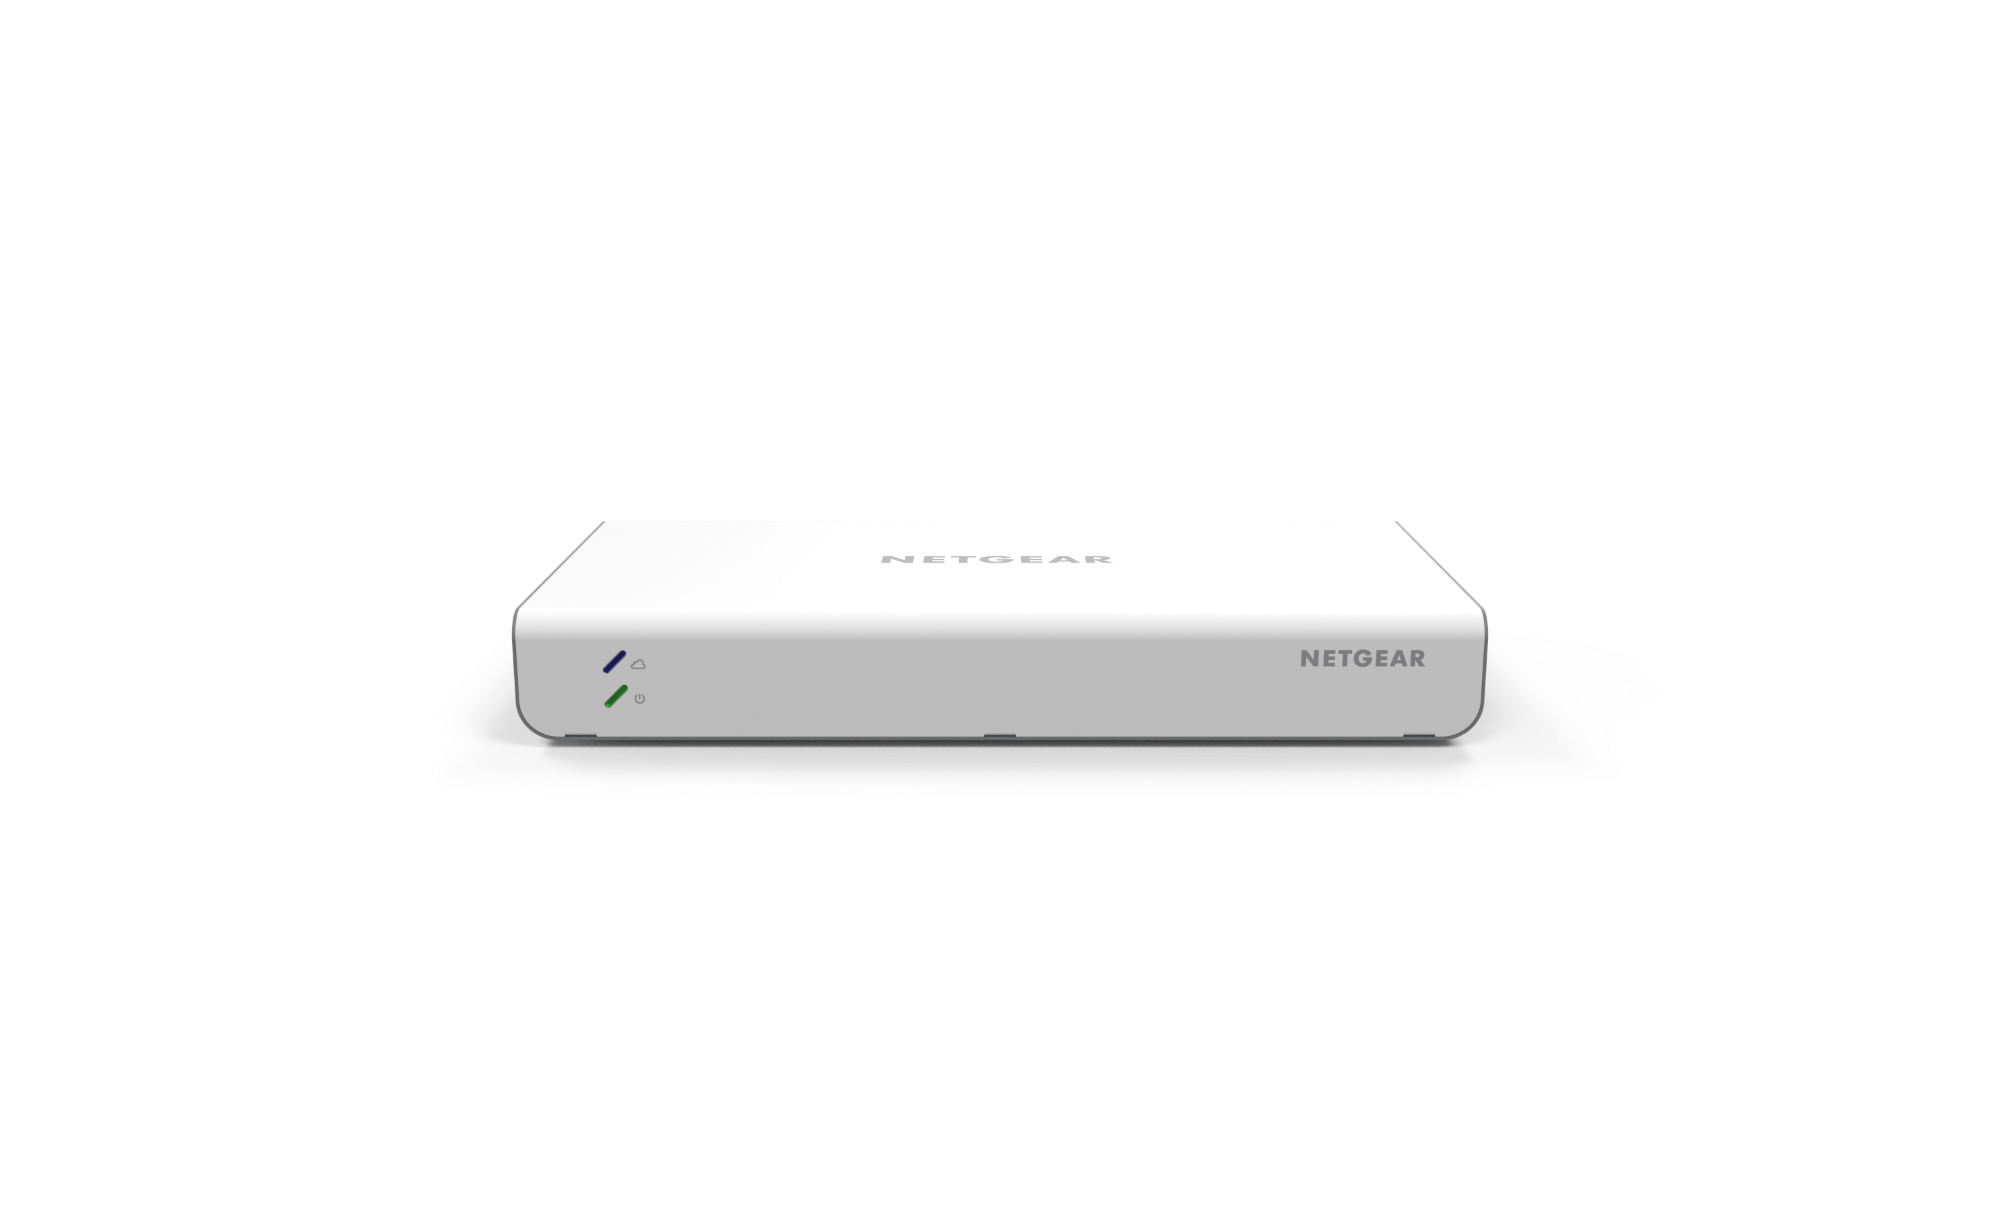 NETGEAR Insight Managed 8-Port Gigabit Ethernet PoE Smart Cloud Switch with 2 SFP Fiber Ports (GC110P)